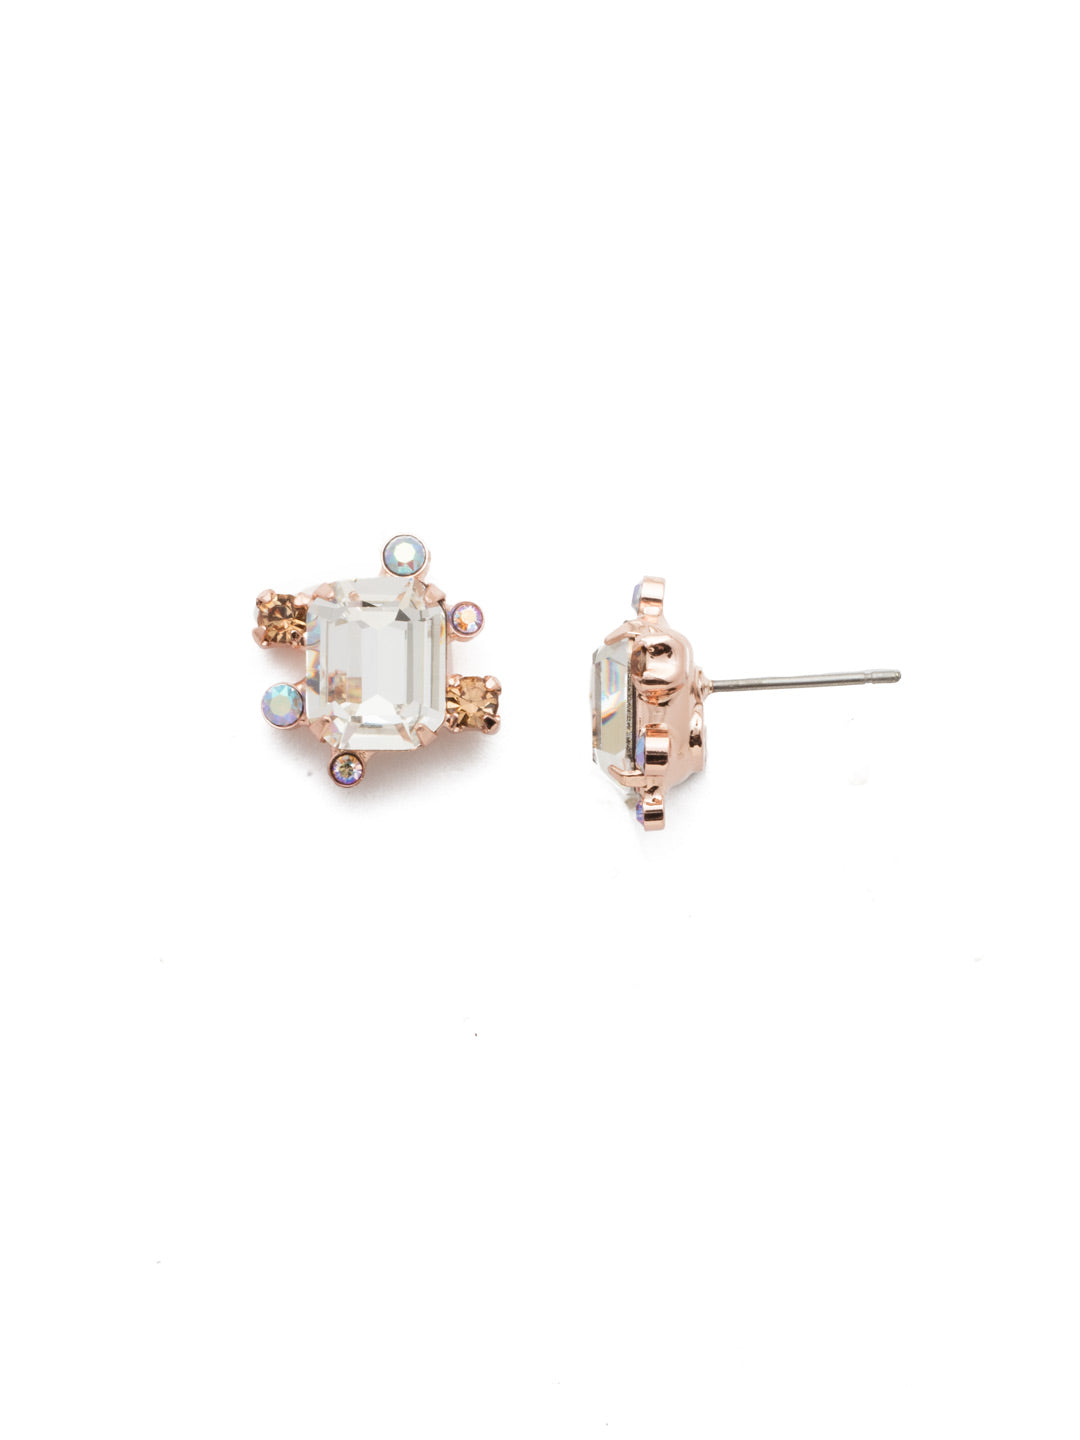 Tara Stud Earrings - EEN30RGROG